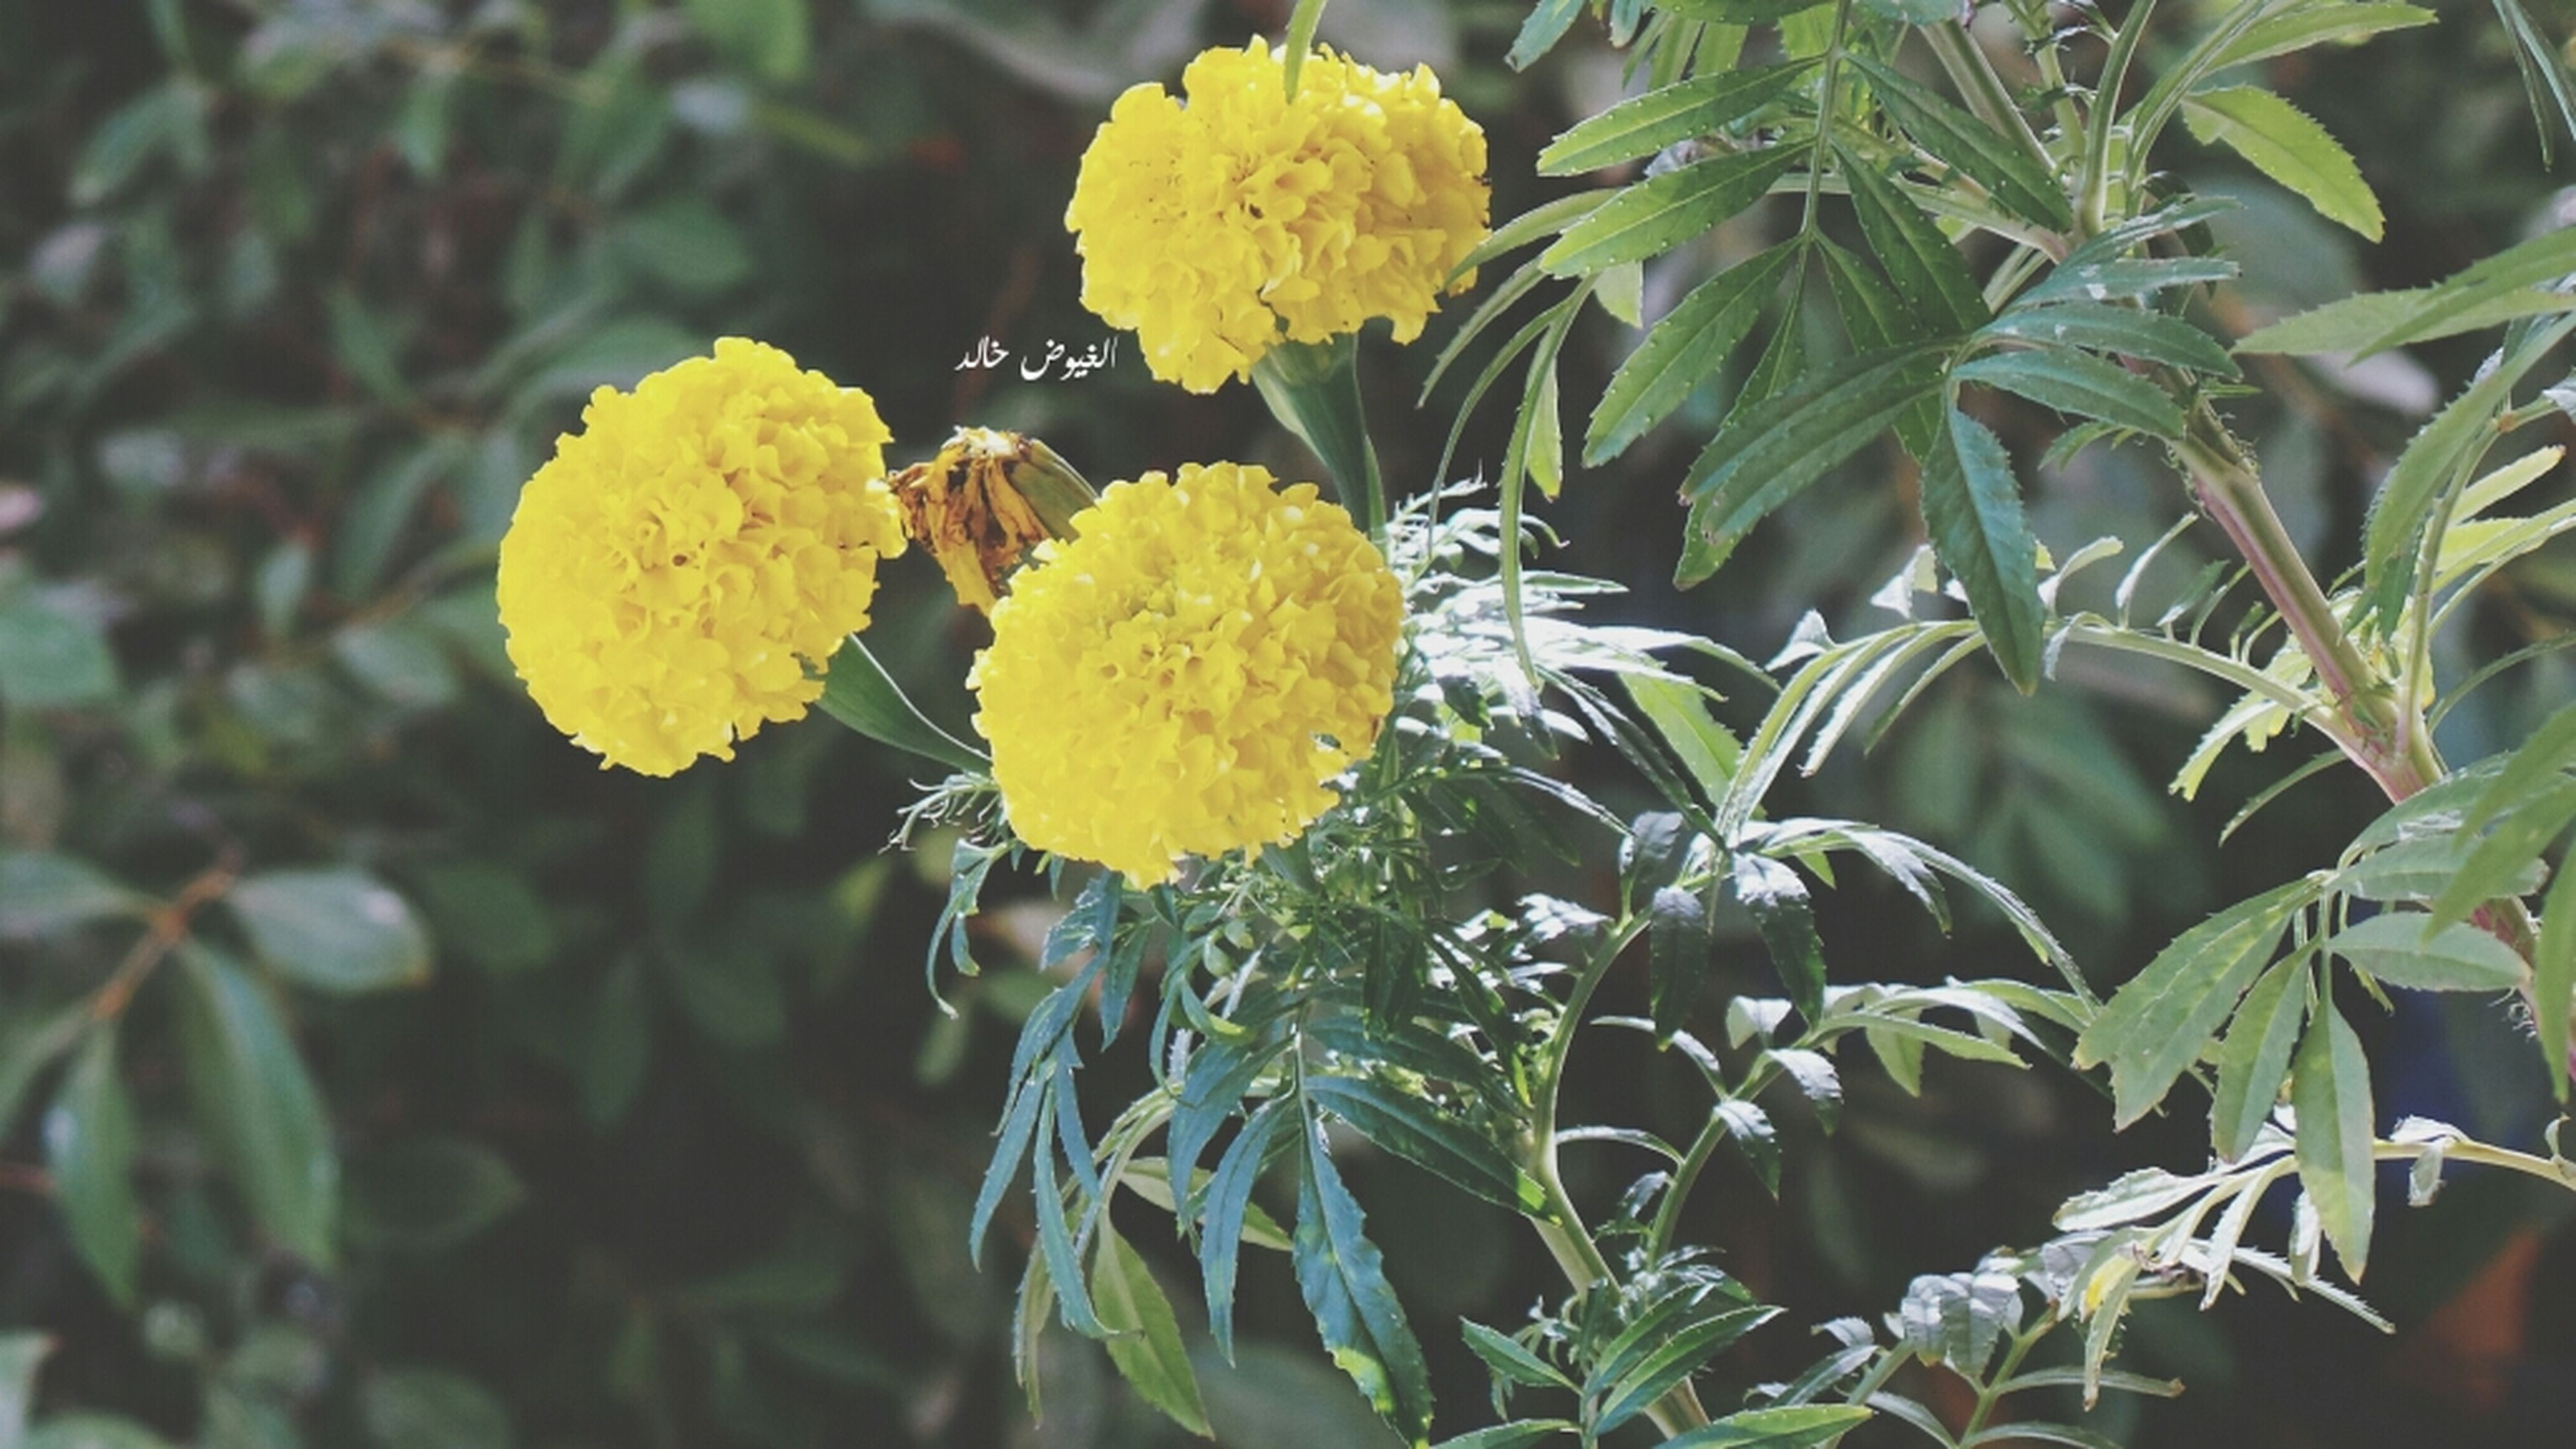 yellow, flower, freshness, growth, fragility, leaf, petal, plant, beauty in nature, nature, close-up, flower head, focus on foreground, blooming, green color, day, outdoors, in bloom, no people, botany